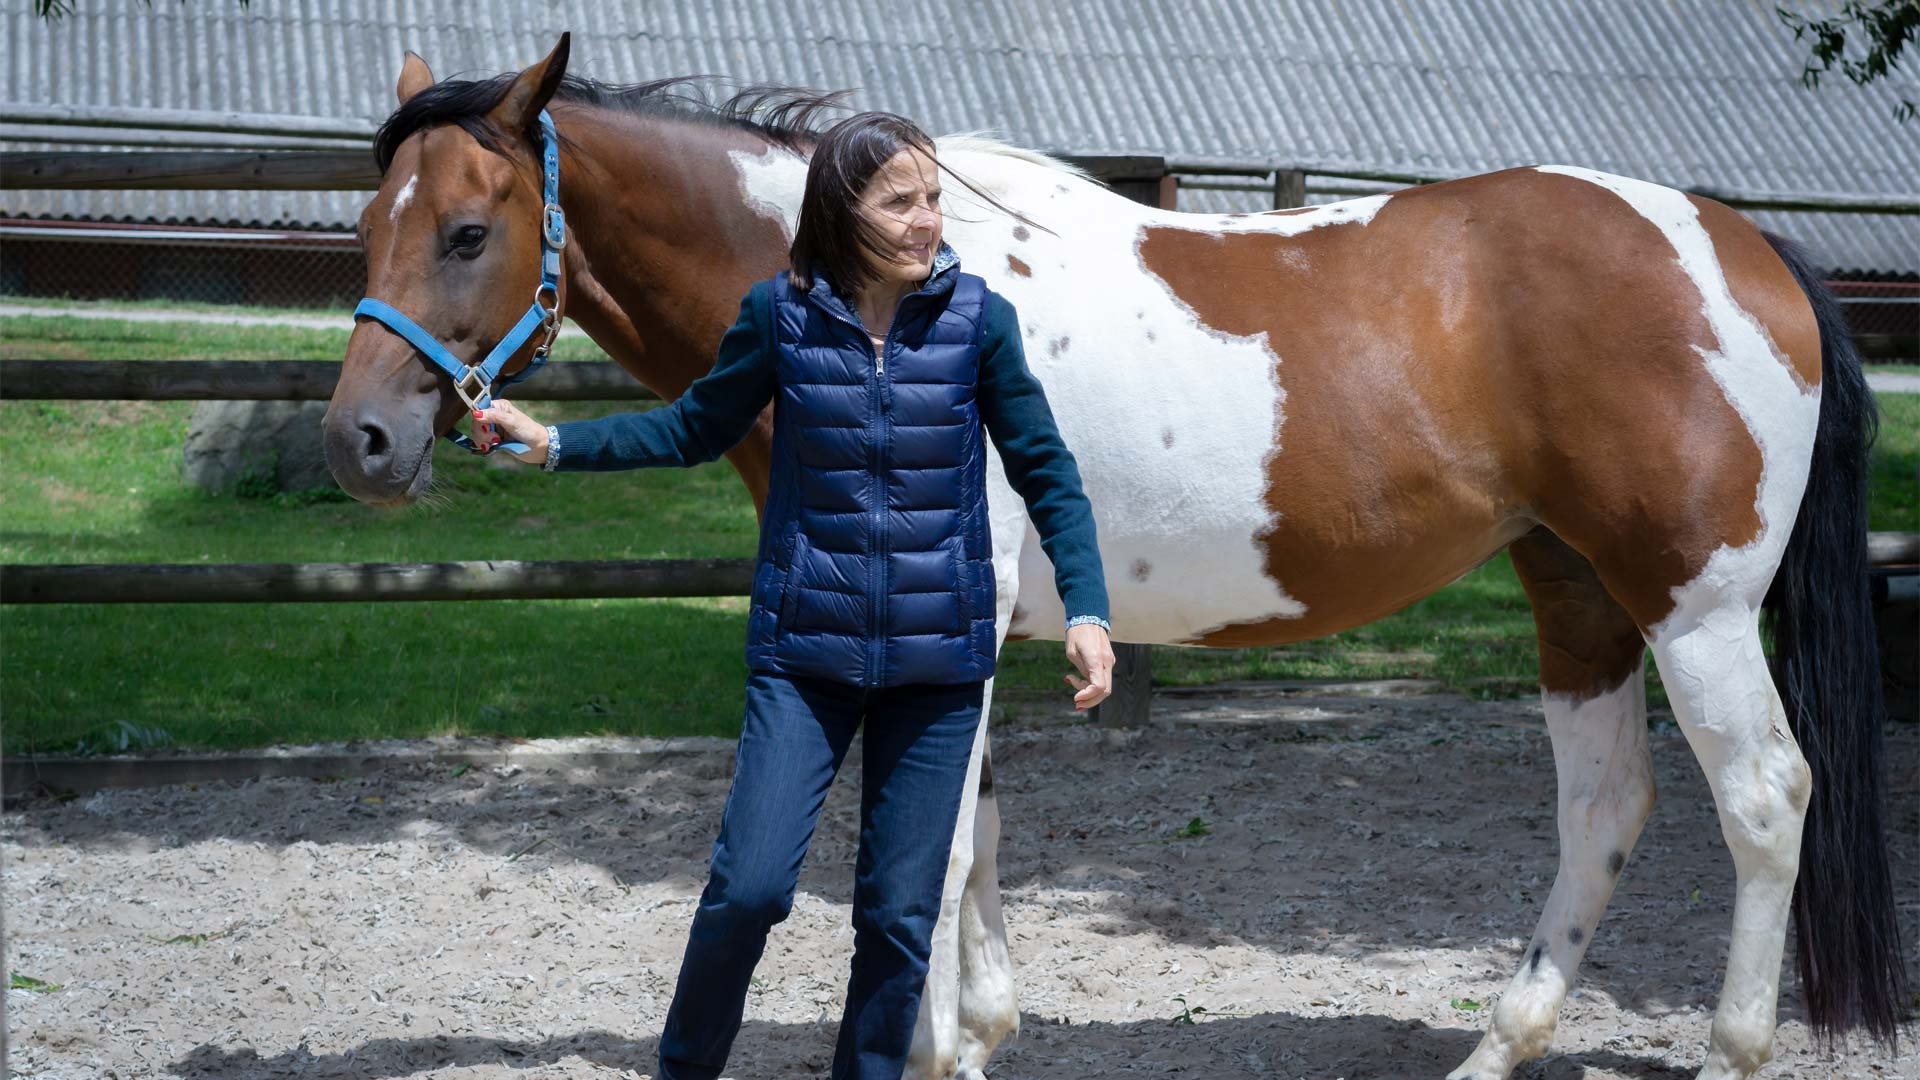 Contact Coaching with Horses